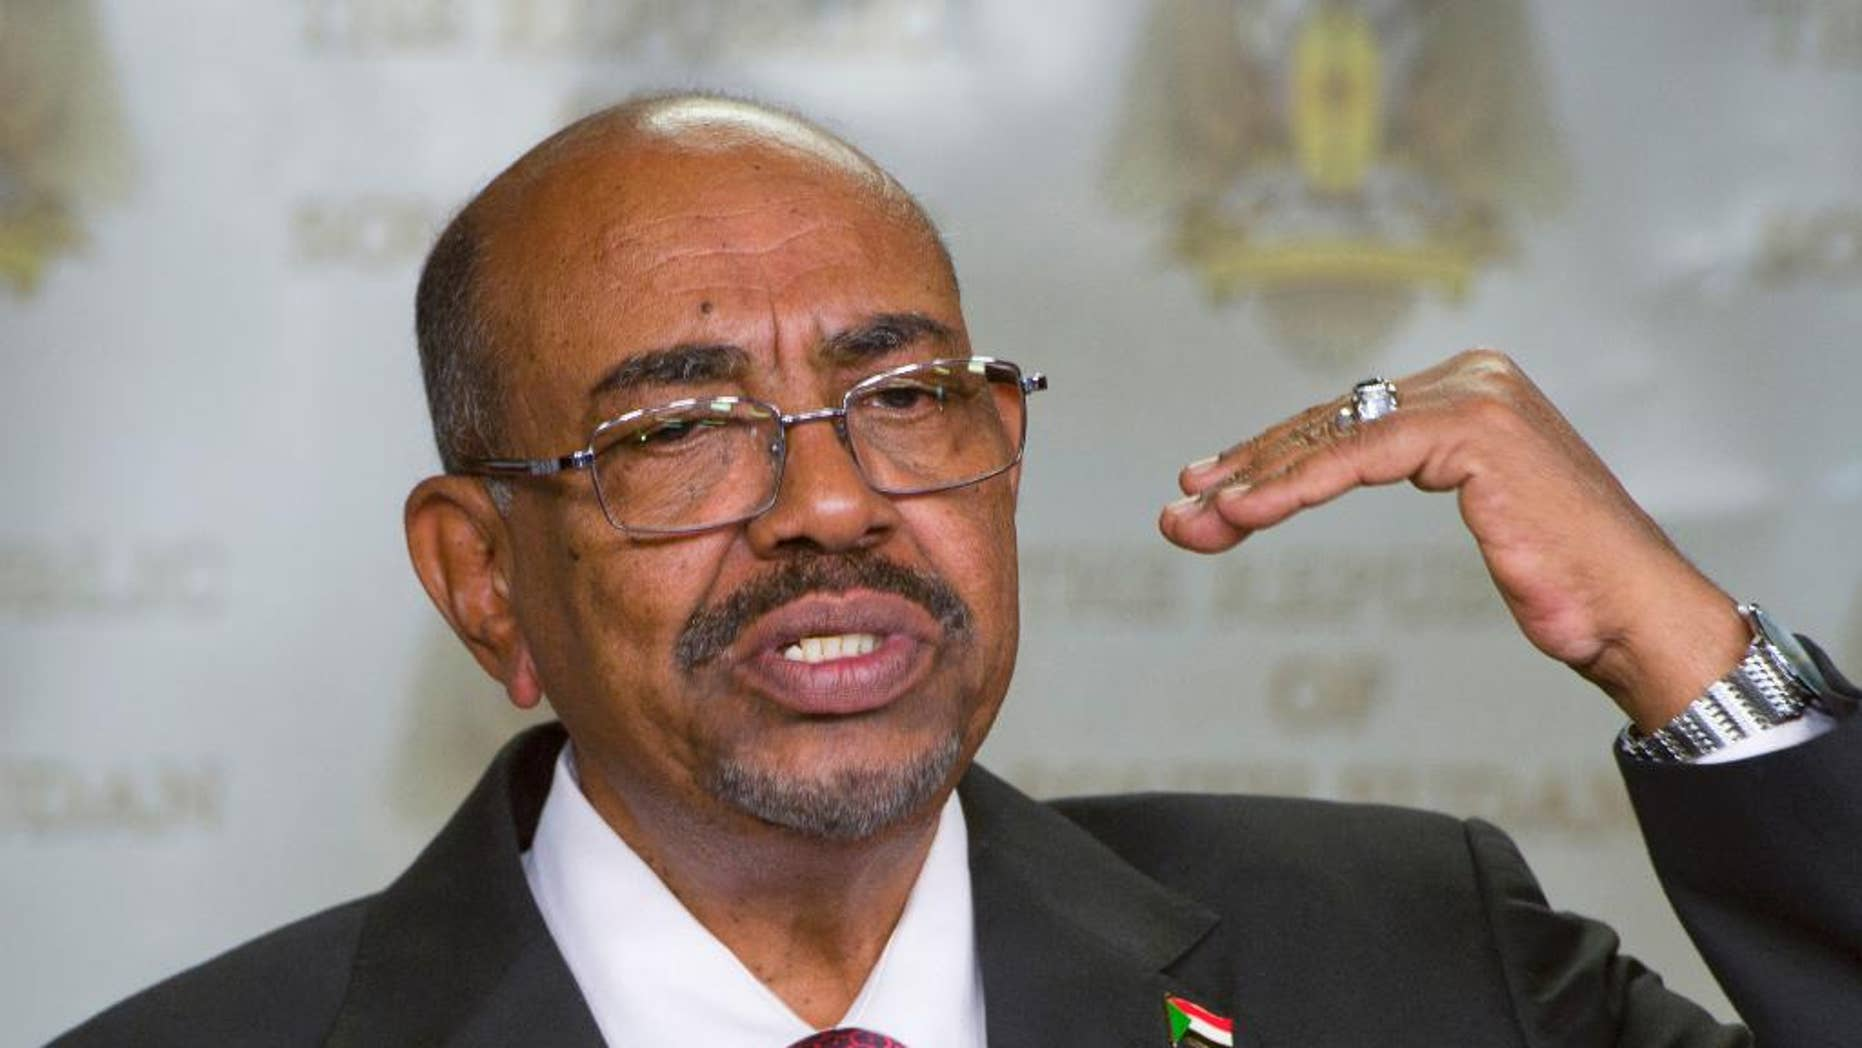 """FILE - In this Jan. 6, 2014 Sudan's president Omar al-Bashir speaks after meeting with South Sudan's President Salva Kiir, in the capital Juba, South Sudan.  Judges at the International Criminal Court on Monday March 9, 2015  have called on the U.N. Security Council to """"take the necessary measures"""" to tackle Sudan's persistent refusal to arrest the country's president and send him to The Hague to stand trial on charges of orchestrating genocide in Darfur. It was the Security Council that called on the Hague-based court in 2005 to investigate widespread atrocities in Darfur — a move that led to President Omar al-Bashir being charged with genocide. (AP Photo/Ali Ngethi, File)"""